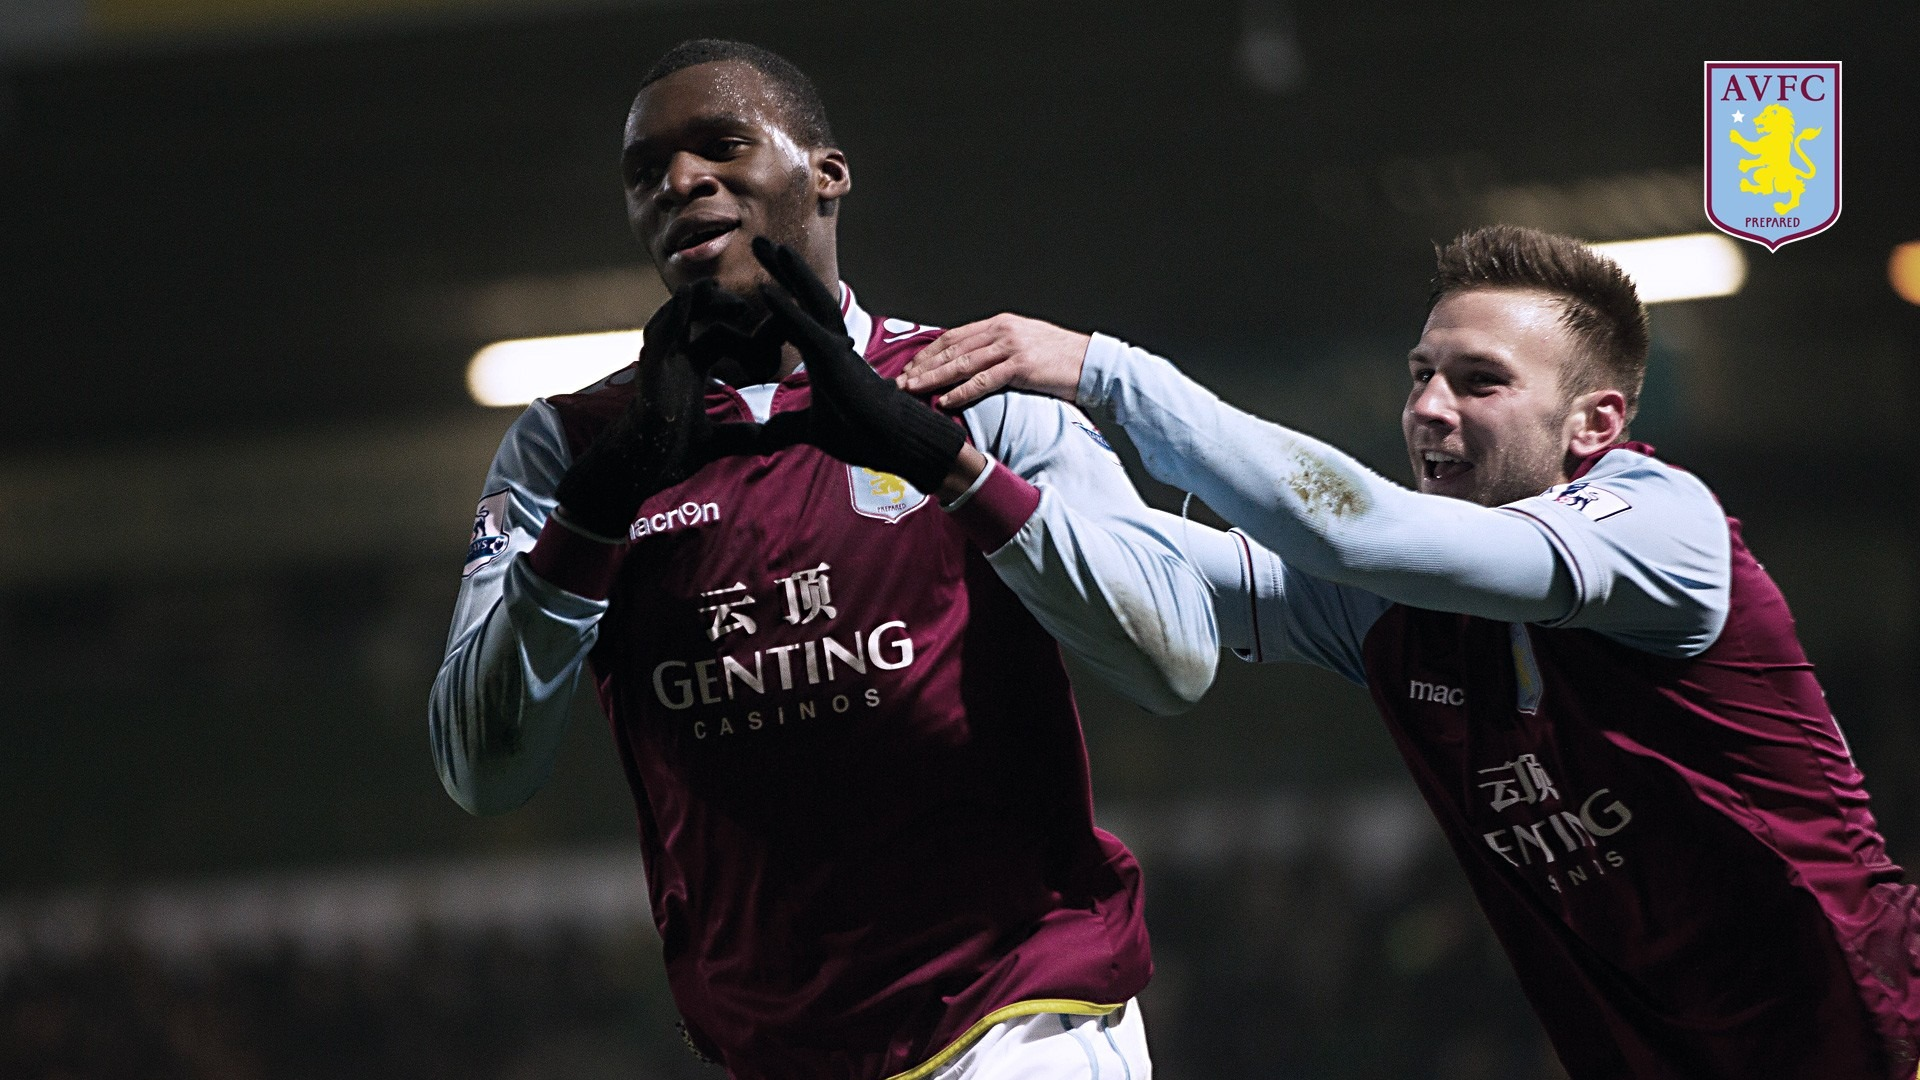 Benteke Hearts Villa Fans-Aston Villa 2013 HD Wallpaper